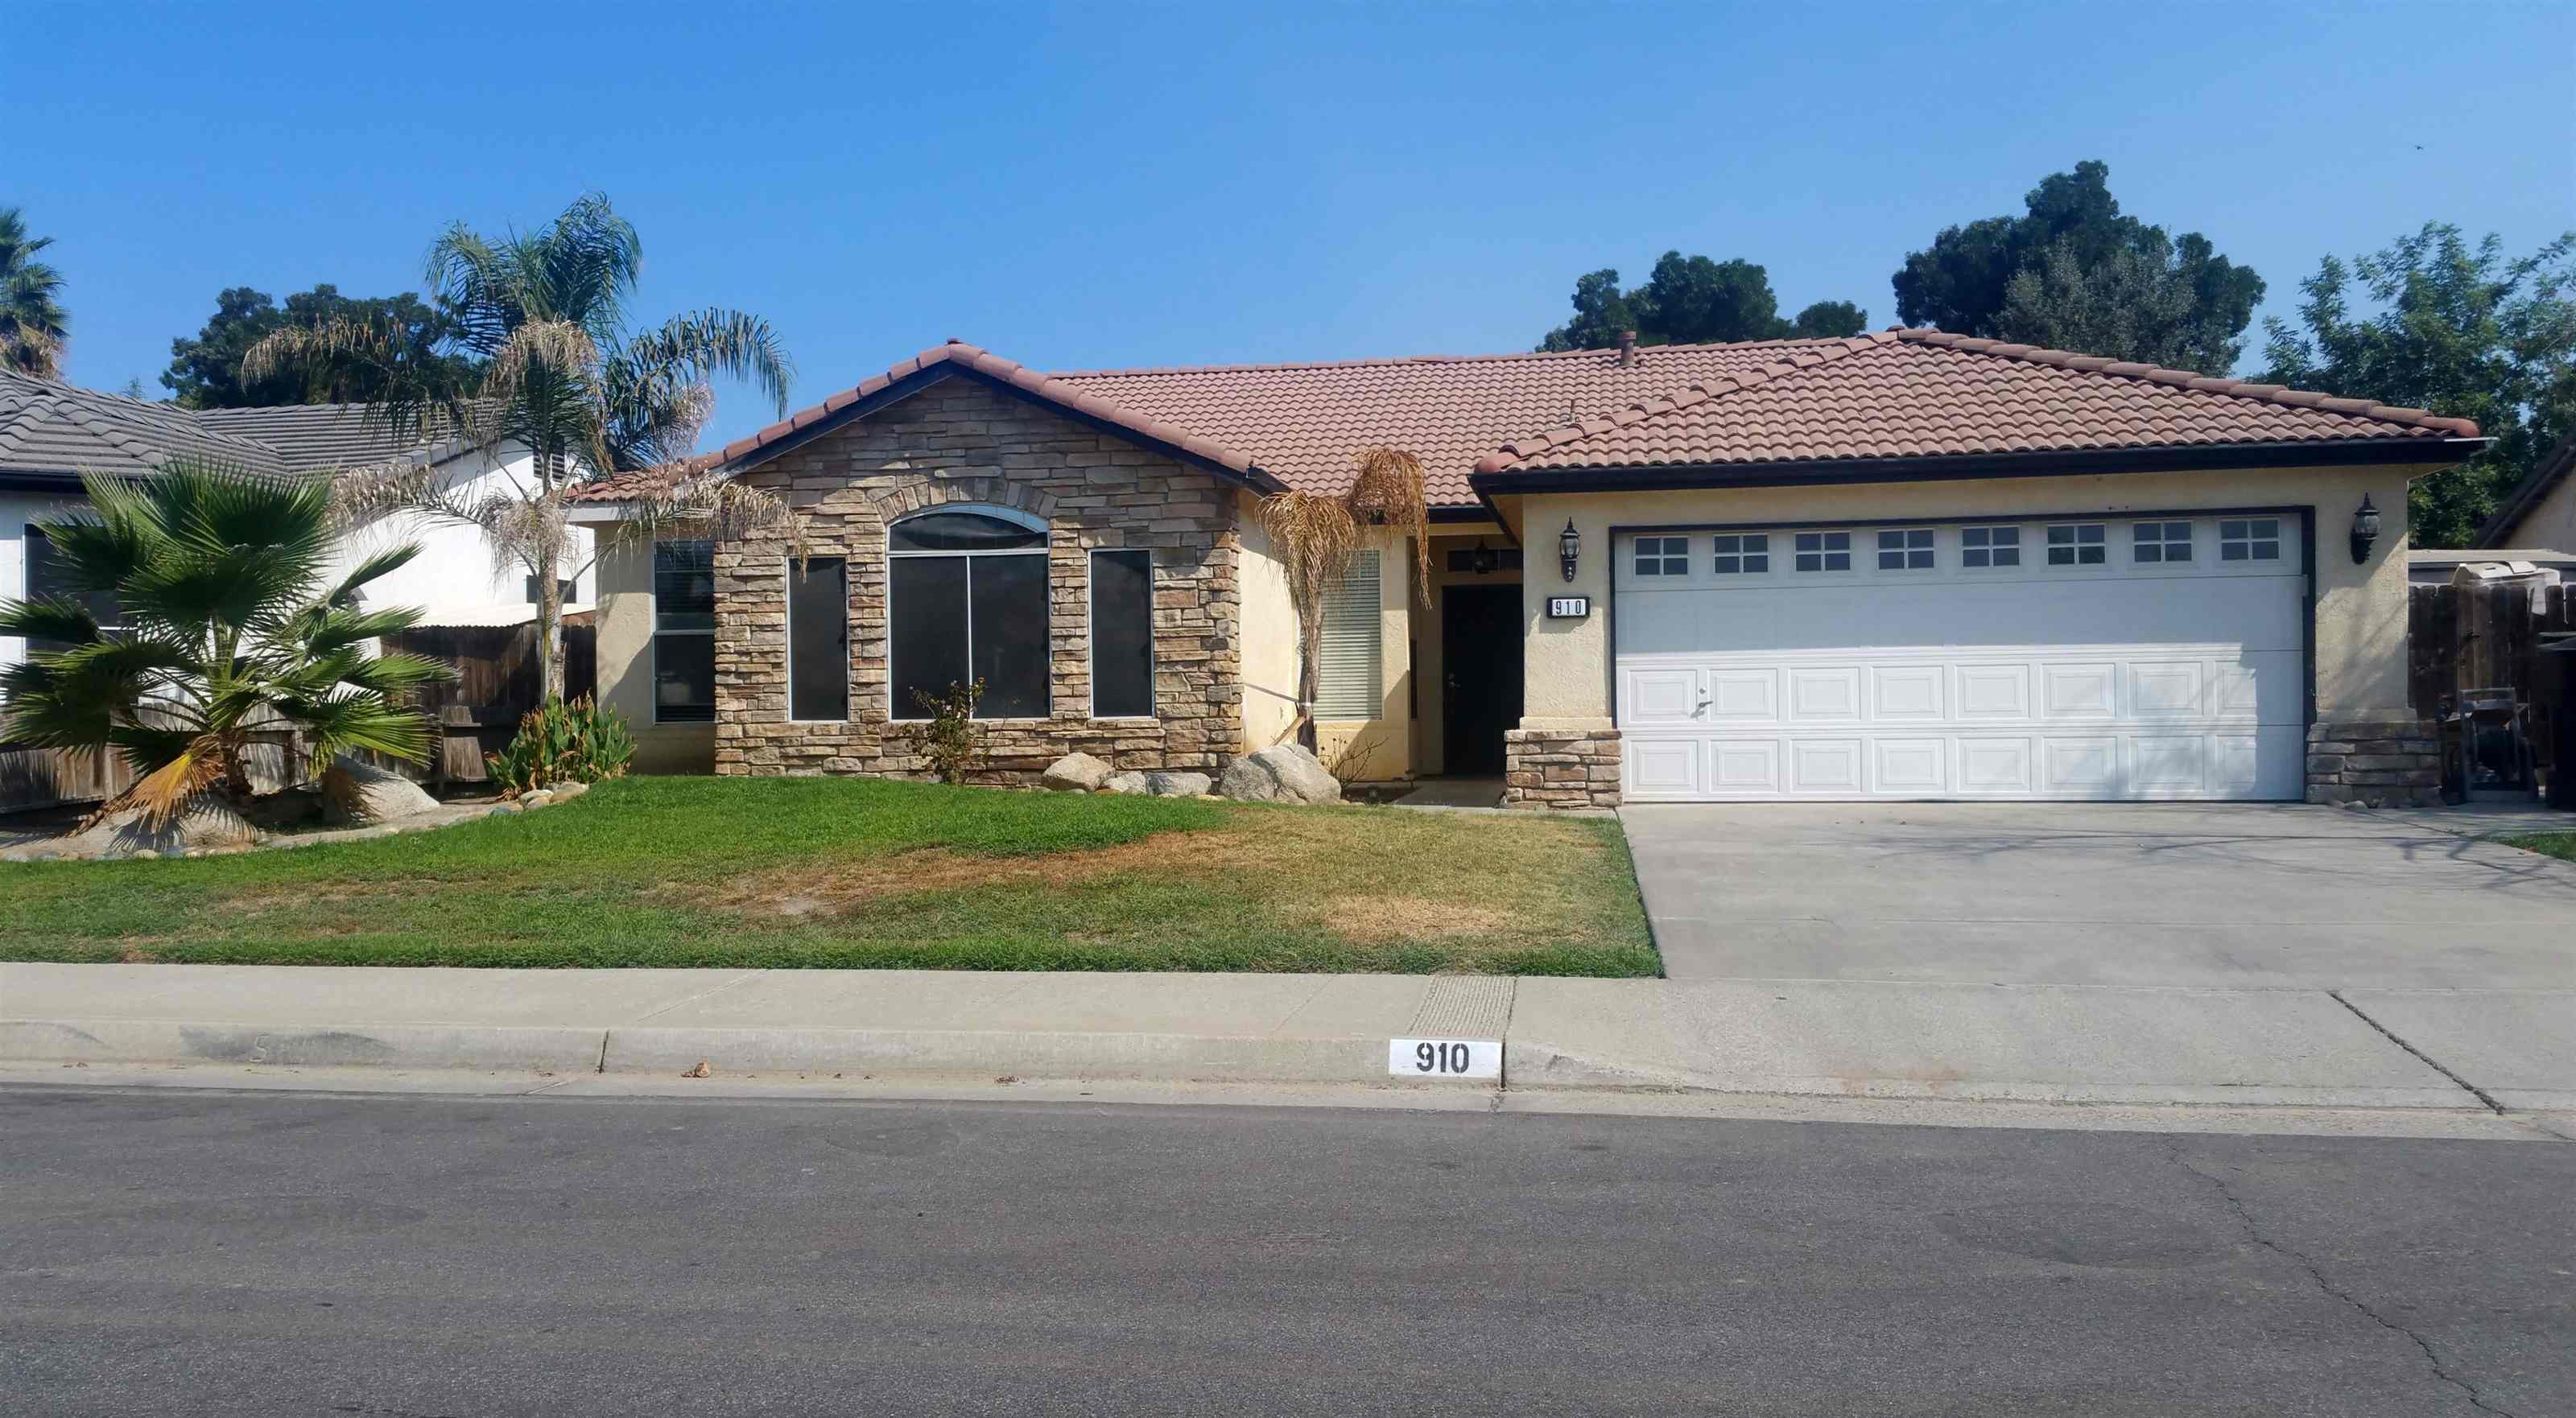 Photo of 910 W Willow St  Hanford  CA